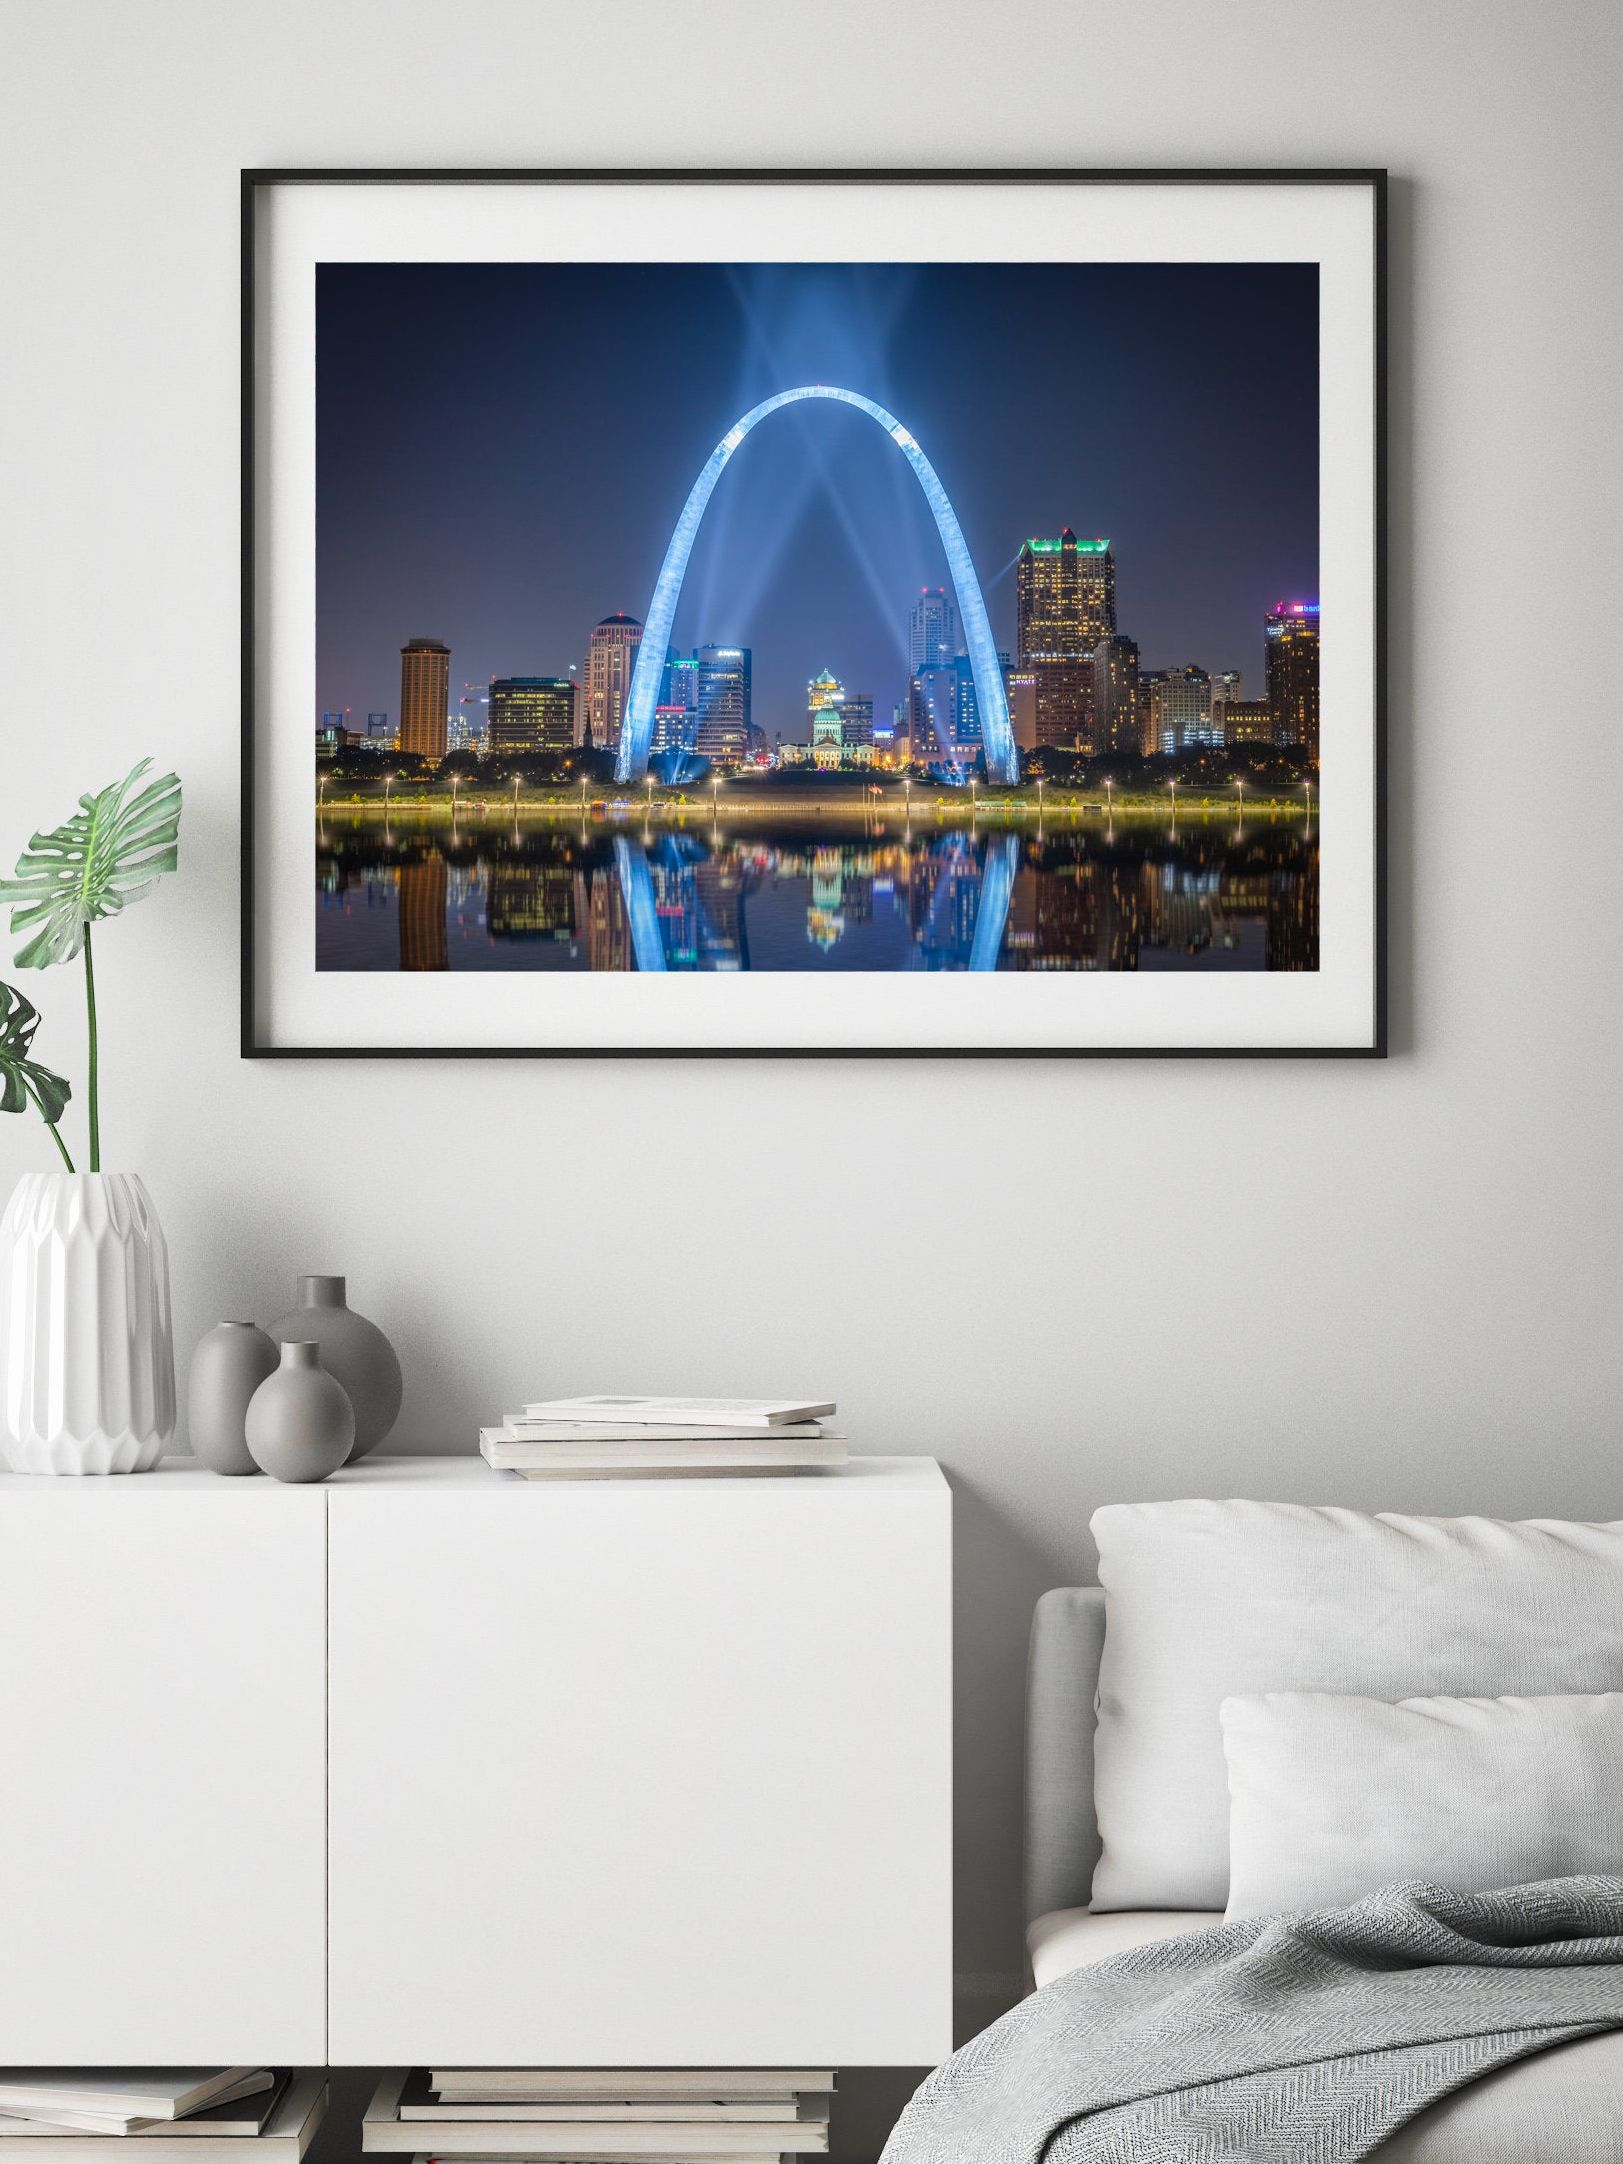 St Louis Wall Art Of Gateway Arch Downtown Skyline At Night With